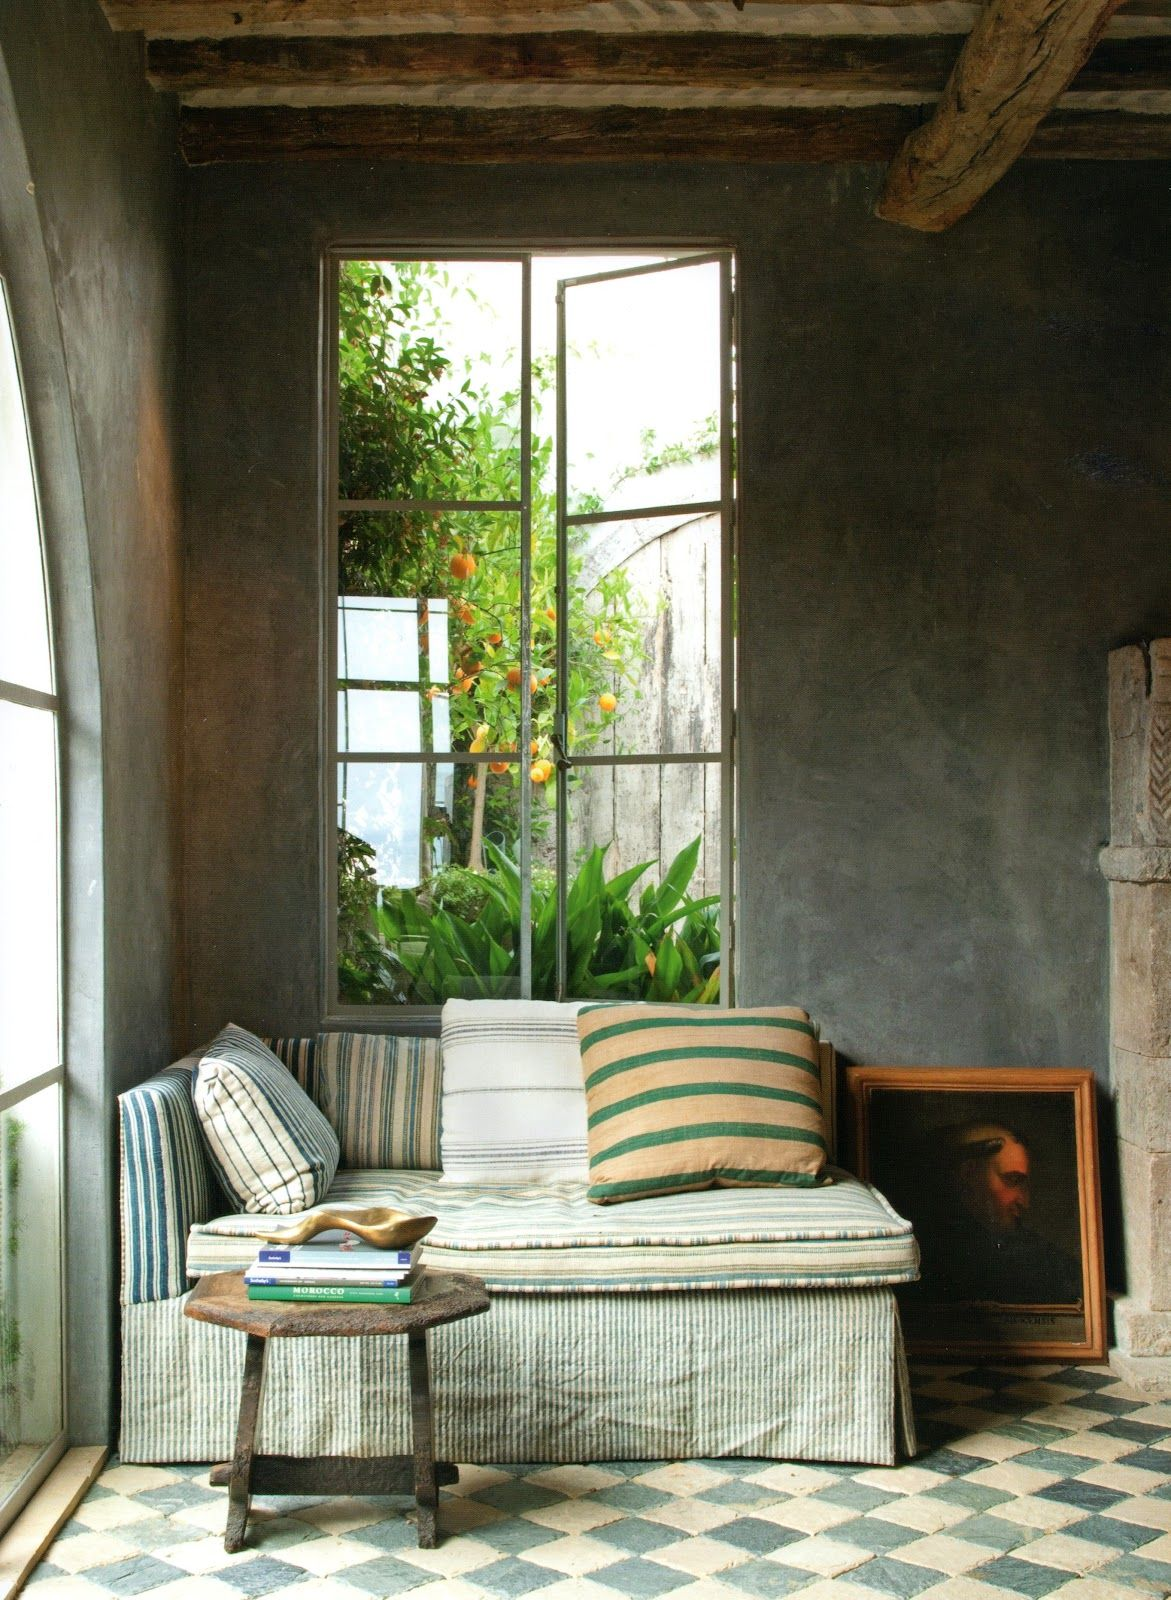 Elegant Corner Sitting Area Image From The Book Rooms To